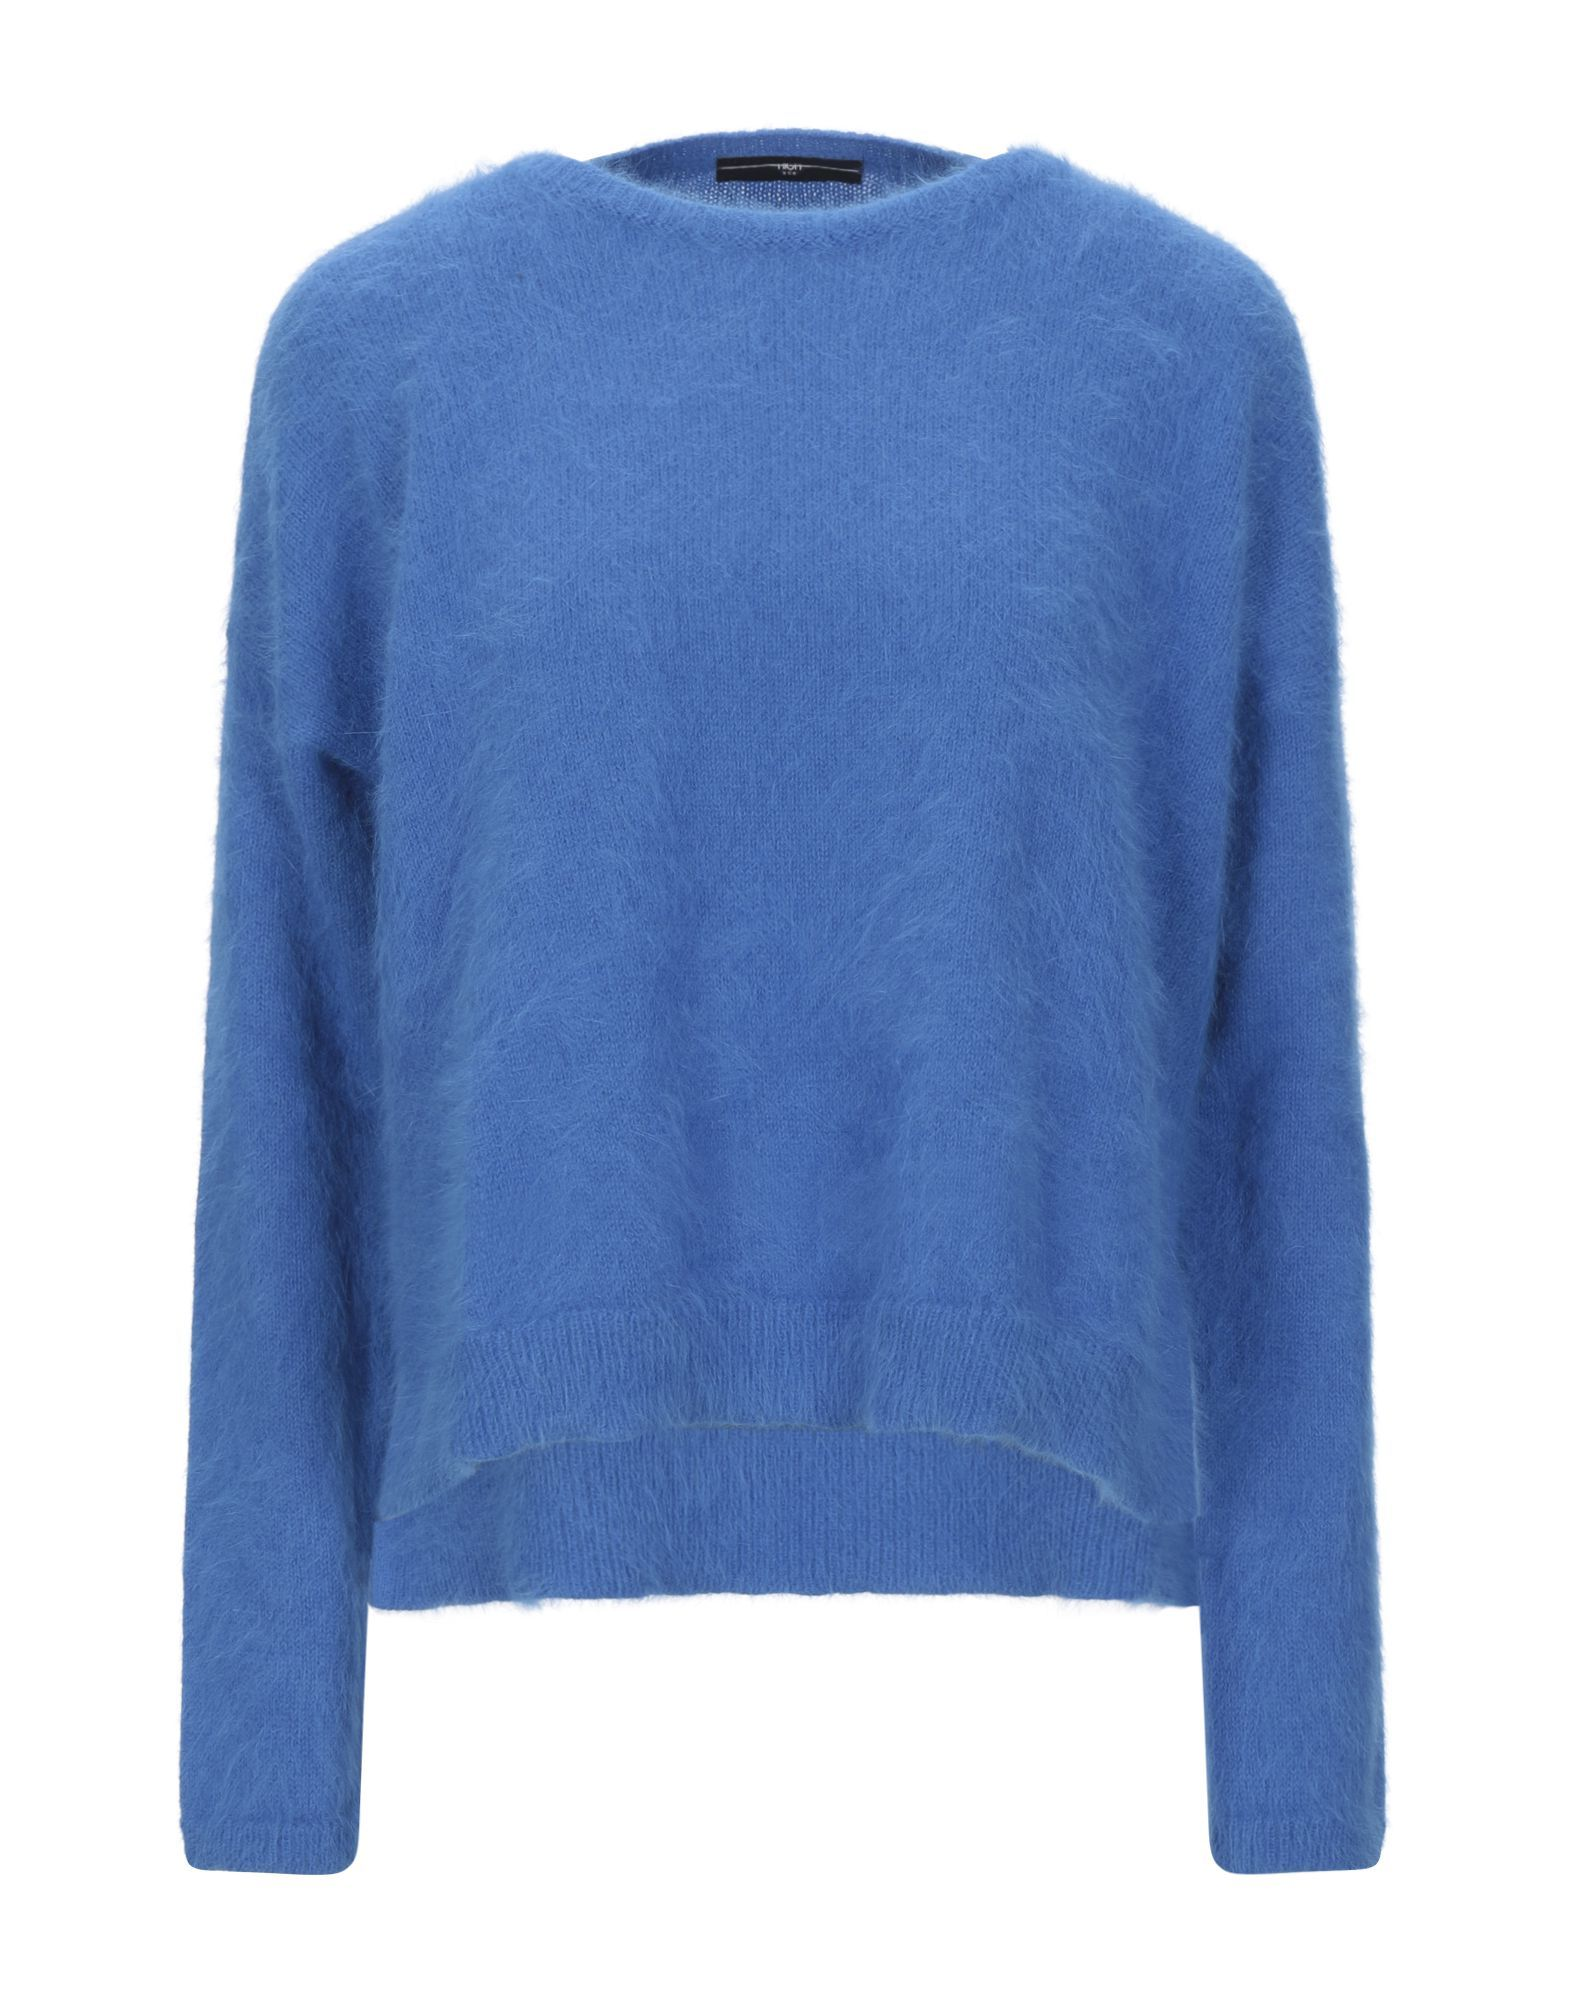 KNITWEAR High By Claire Campbell Azure Woman Angora